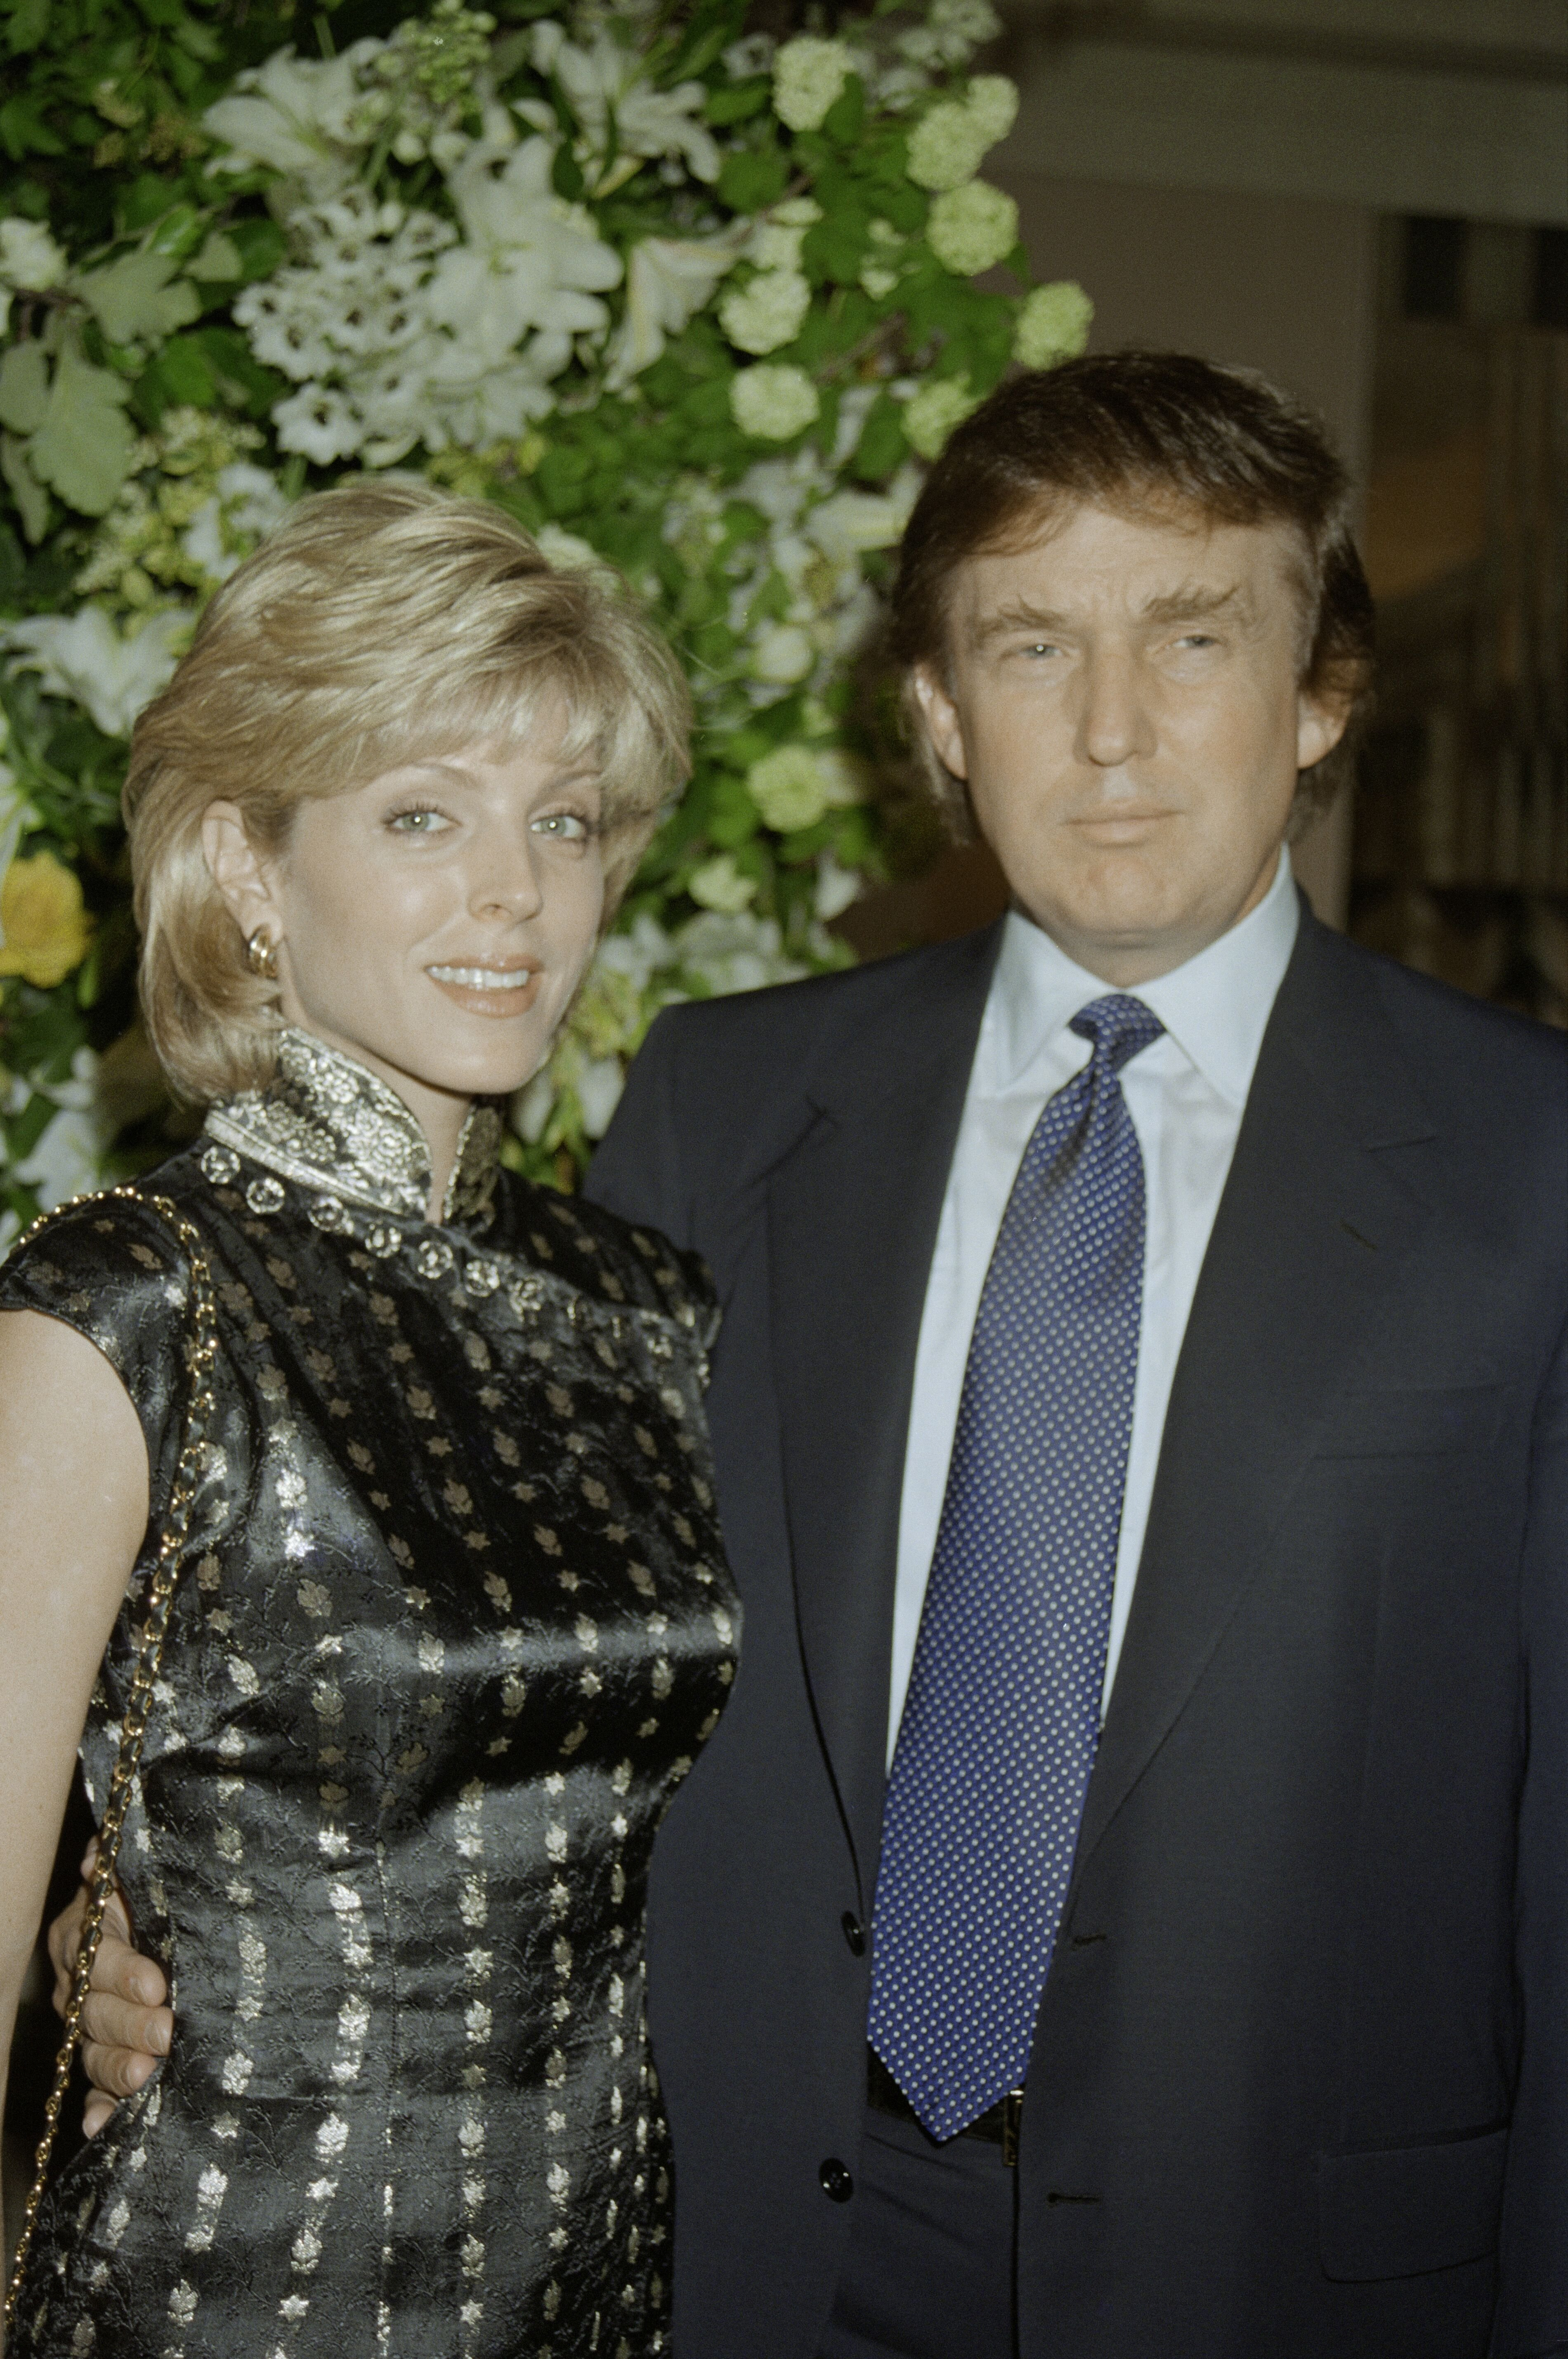 Donald Trump and Marla Maples, at Claridge's hotel in London, June 4, 1996 | Source: Getty Images